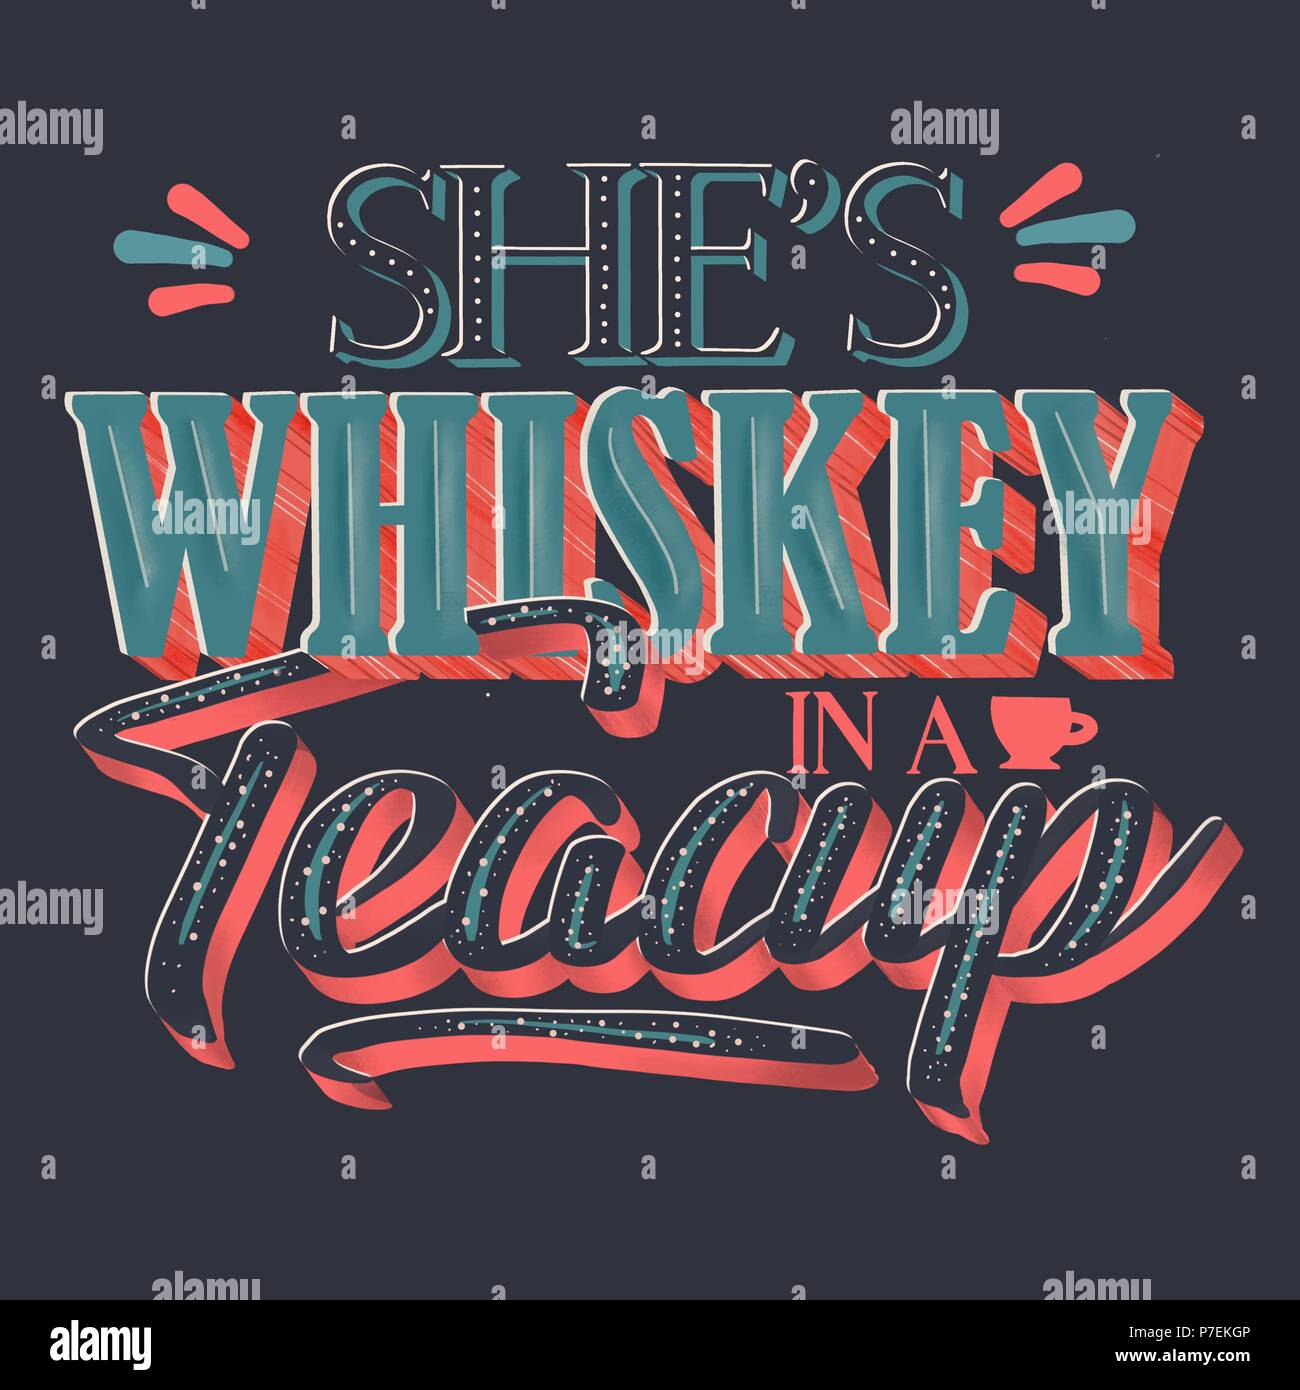 She Is Whiskey In A Teacup Frame With Stars Vintage Americana Label Style